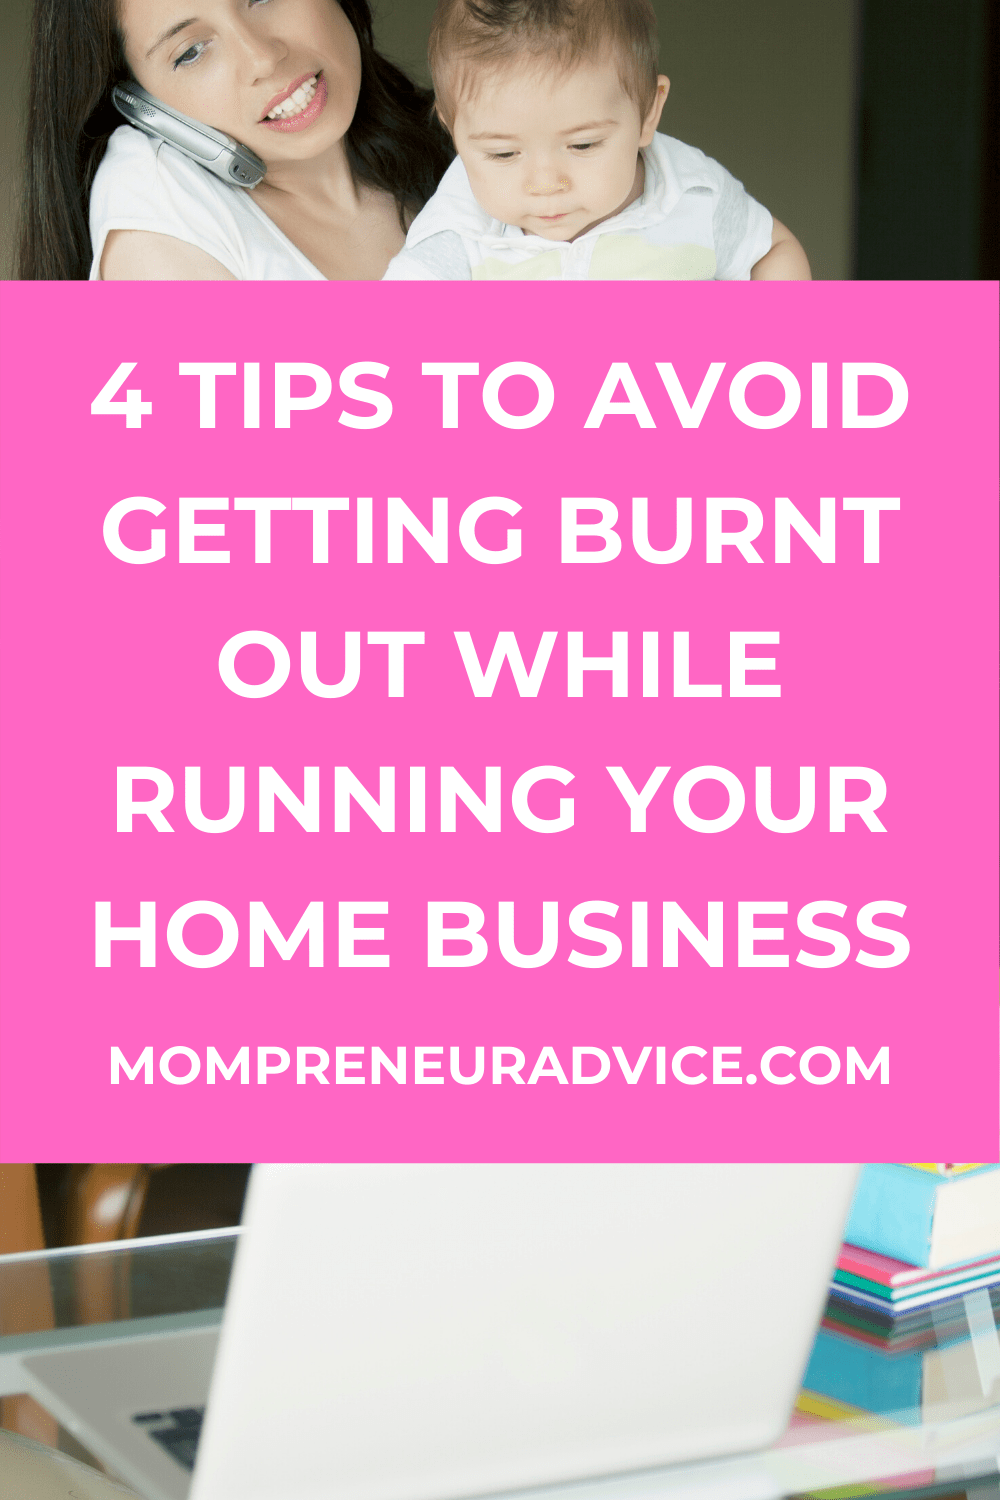 Here's 4 tips to avoid getting burnt out while running your home business - mompreneuradvice.com